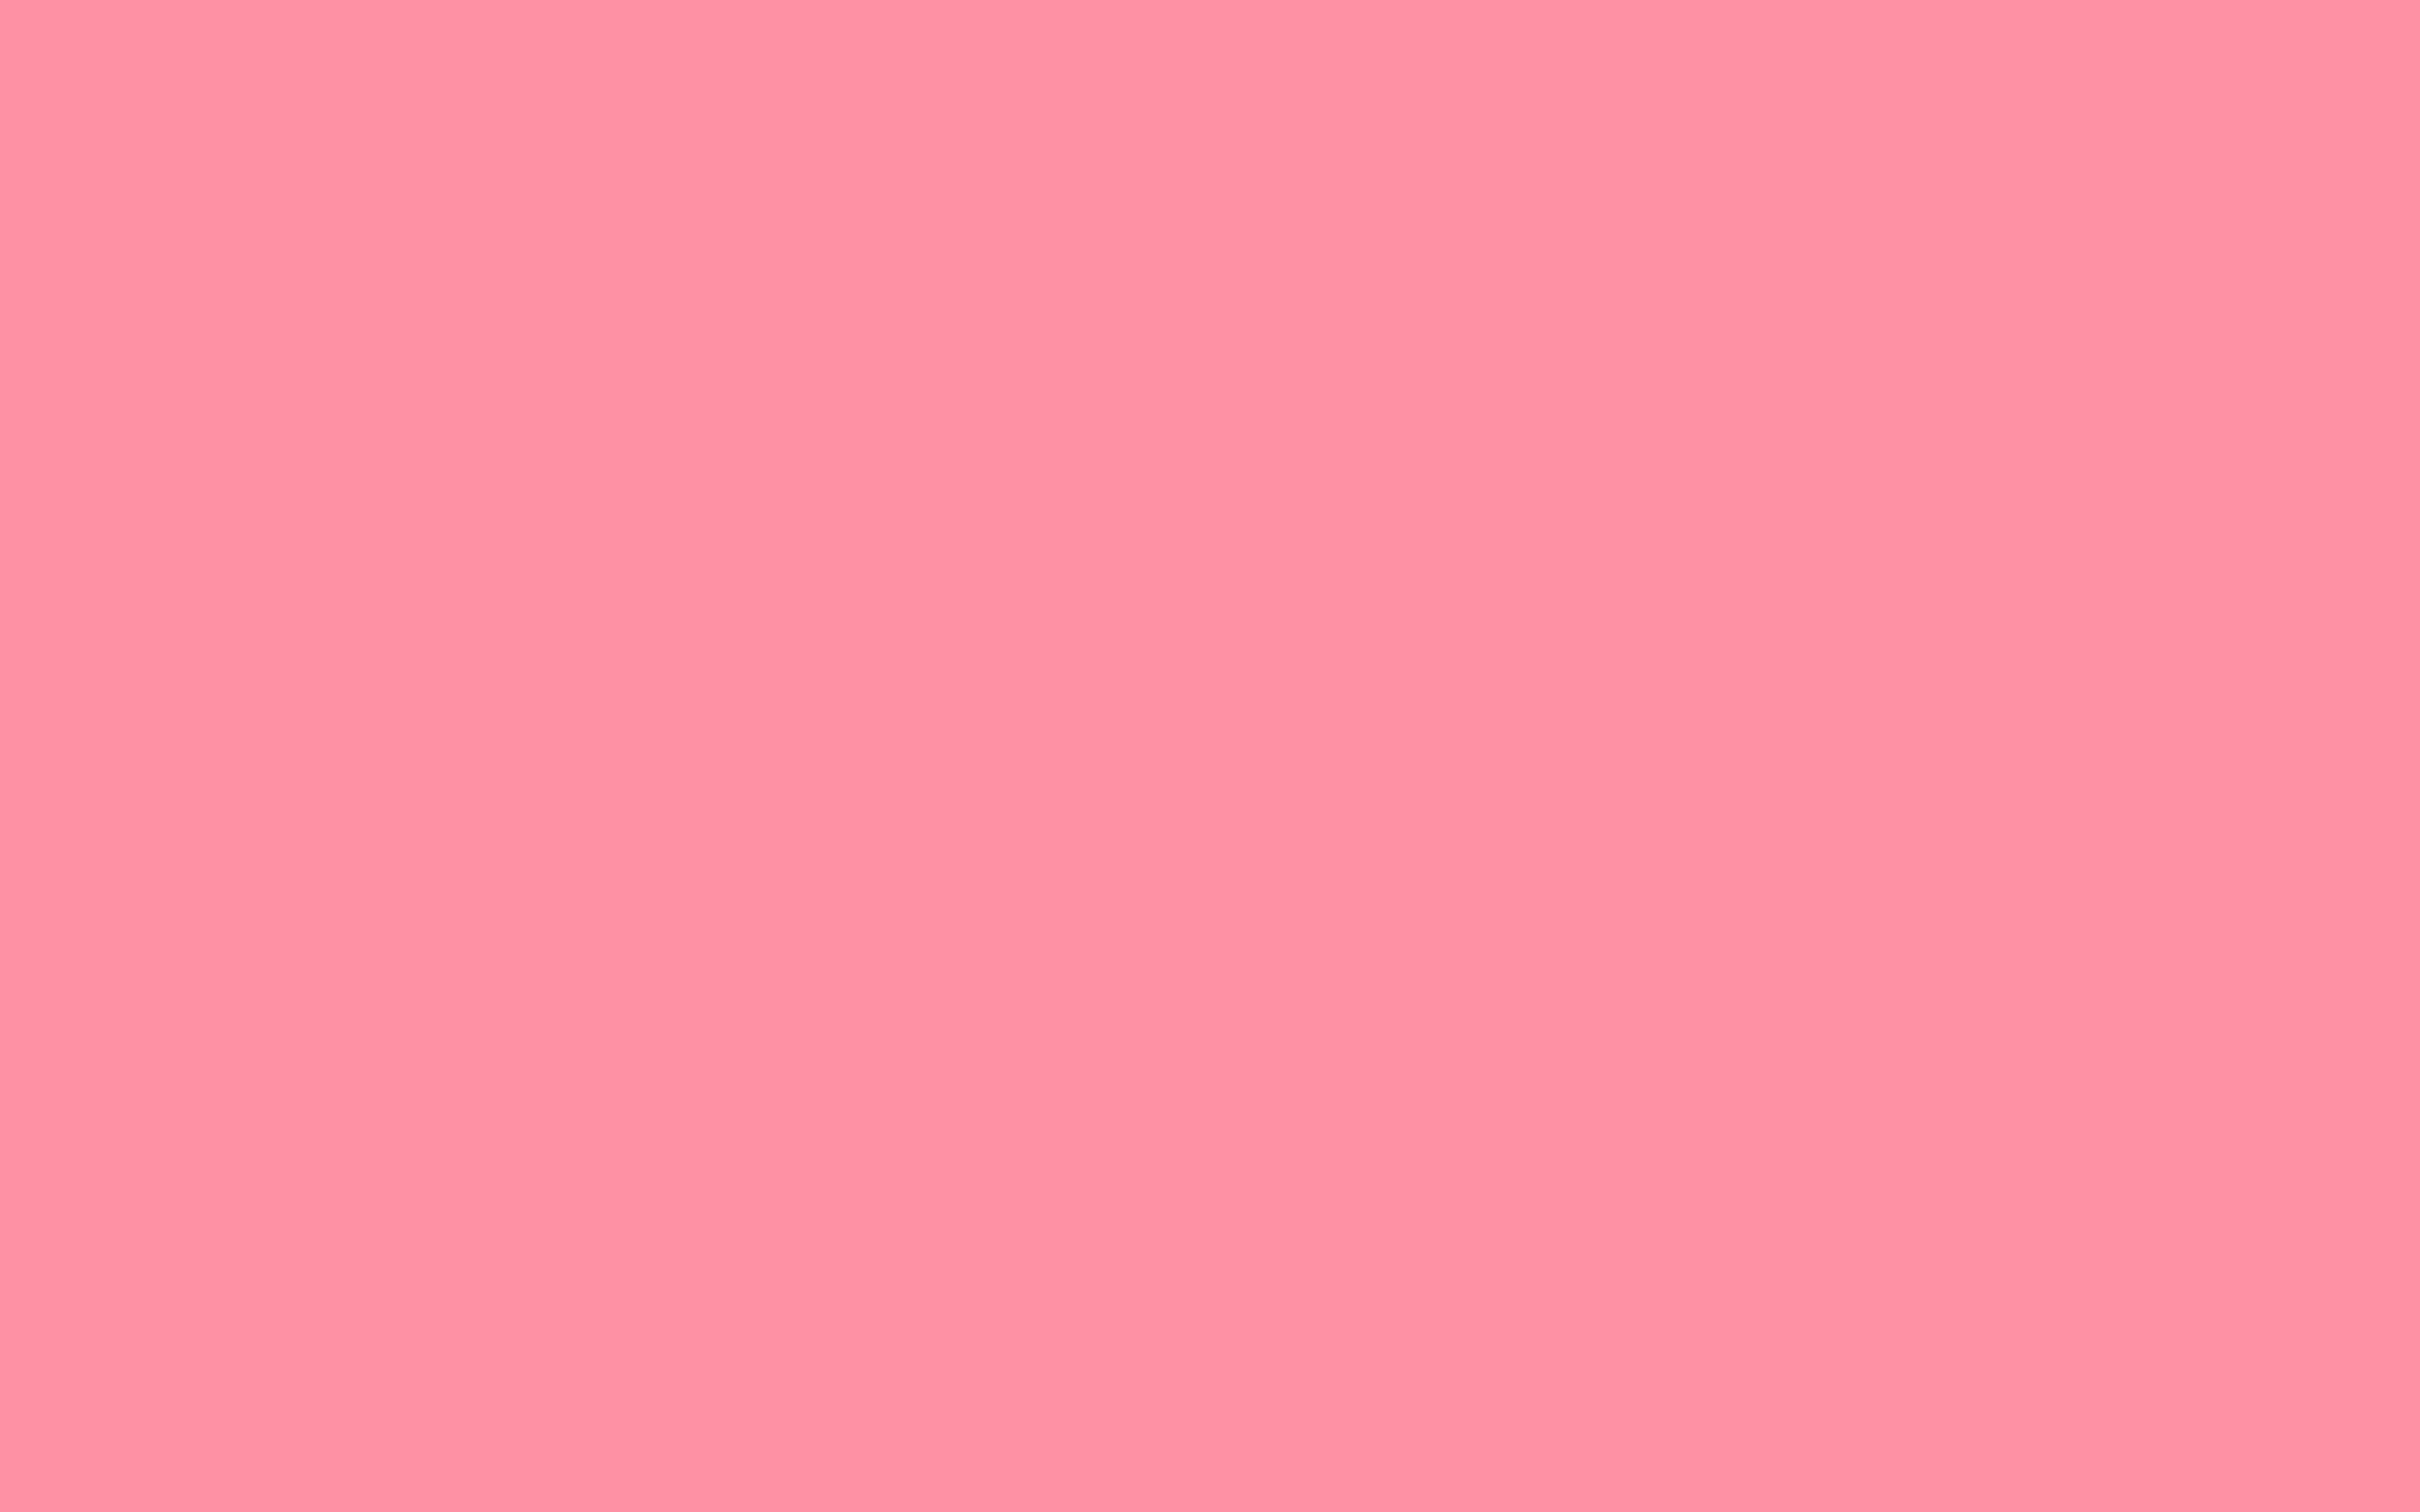 2560x1600 Salmon Pink Solid Color Background